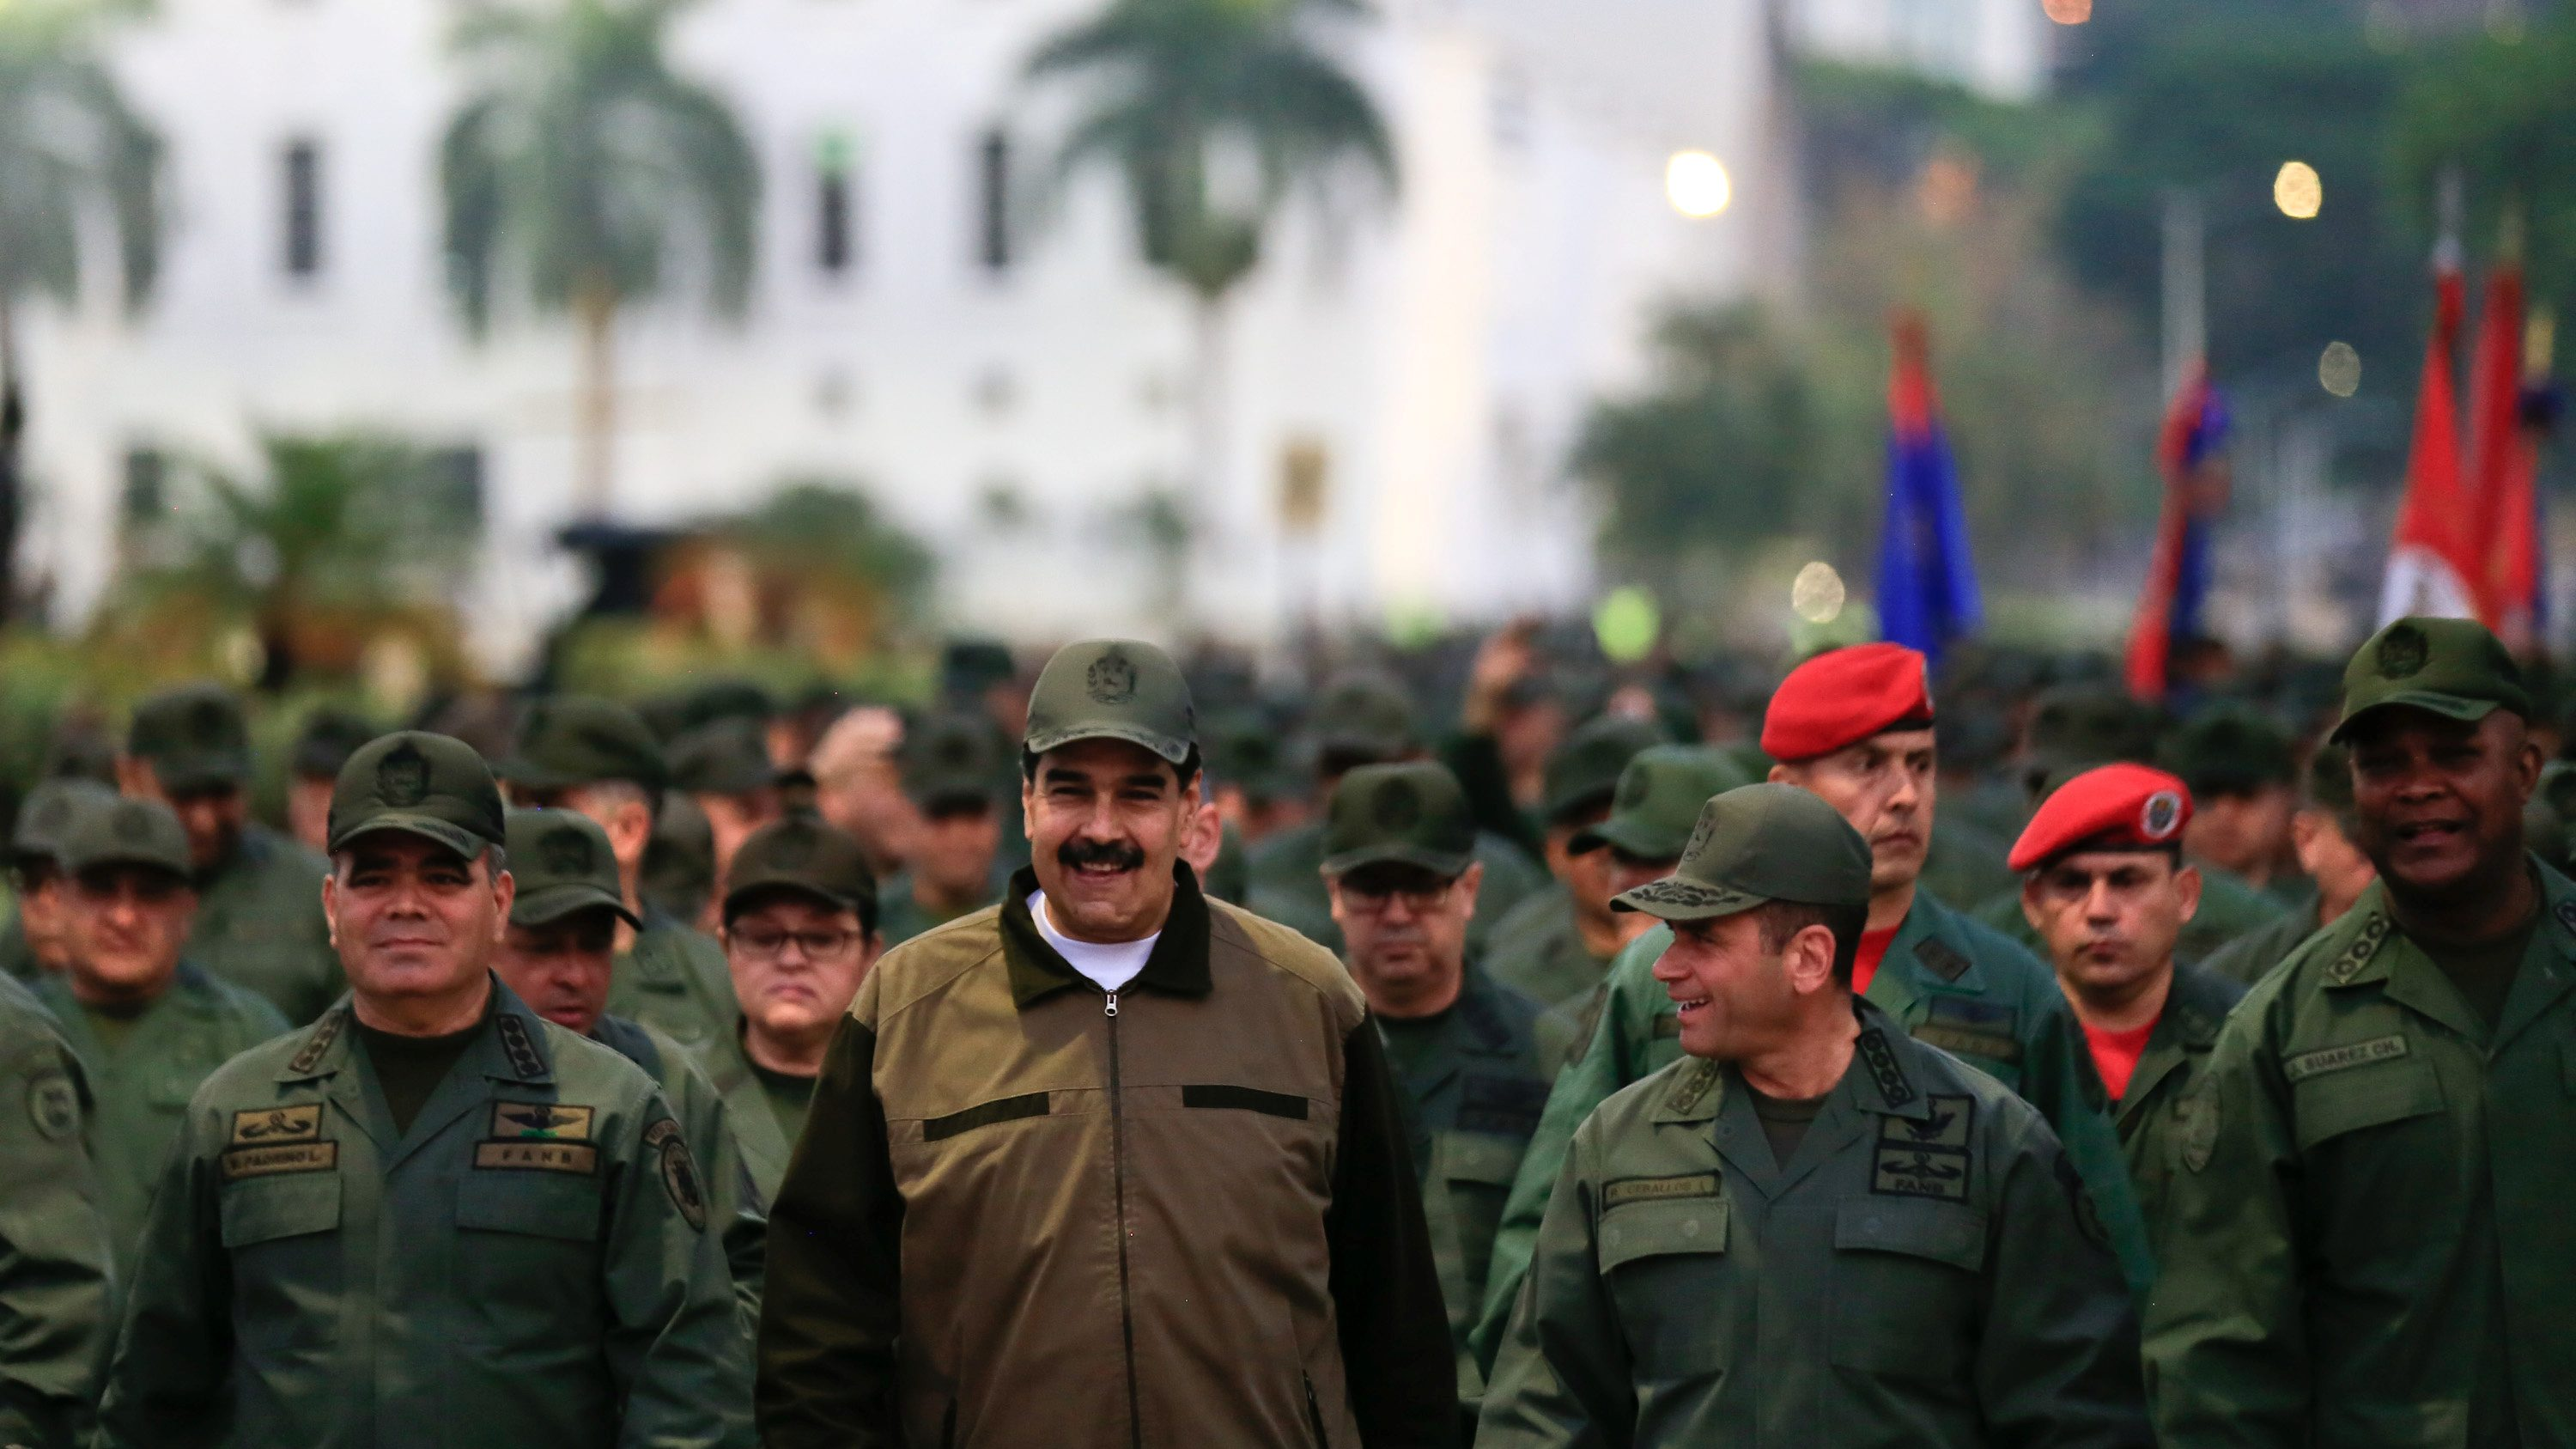 Venezuela's President Nicolas Maduro smiles as he walks next to Venezuela's Defense Minister Vladimir Padrino Lopez and Remigio Ceballos, Strategic Operational Commander of the Bolivarian National Armed Forces, during a ceremony at a military base in Caracas, Venezuela May 2, 2019.